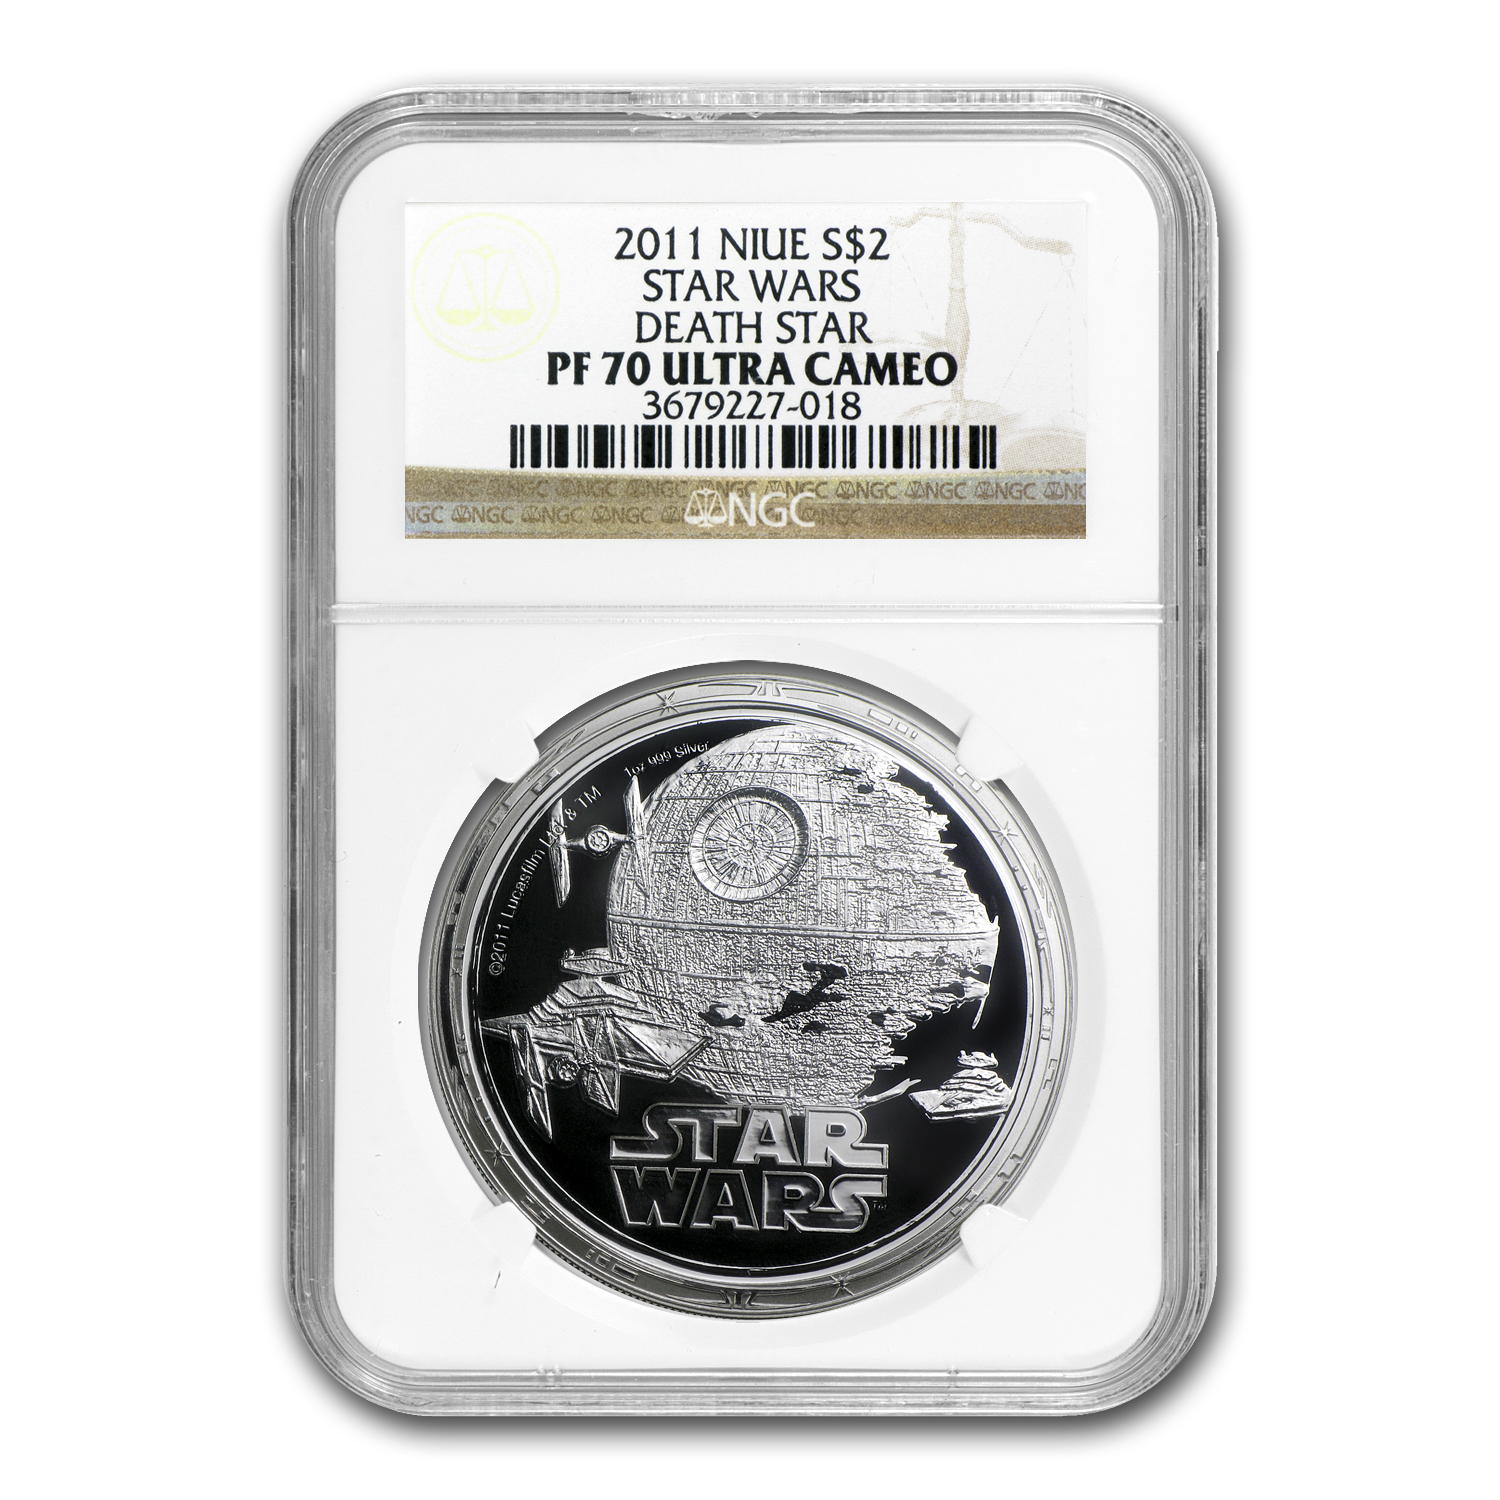 2011 Niue 1 oz Silver $2 Star Wars Death Star PF-70 NGC